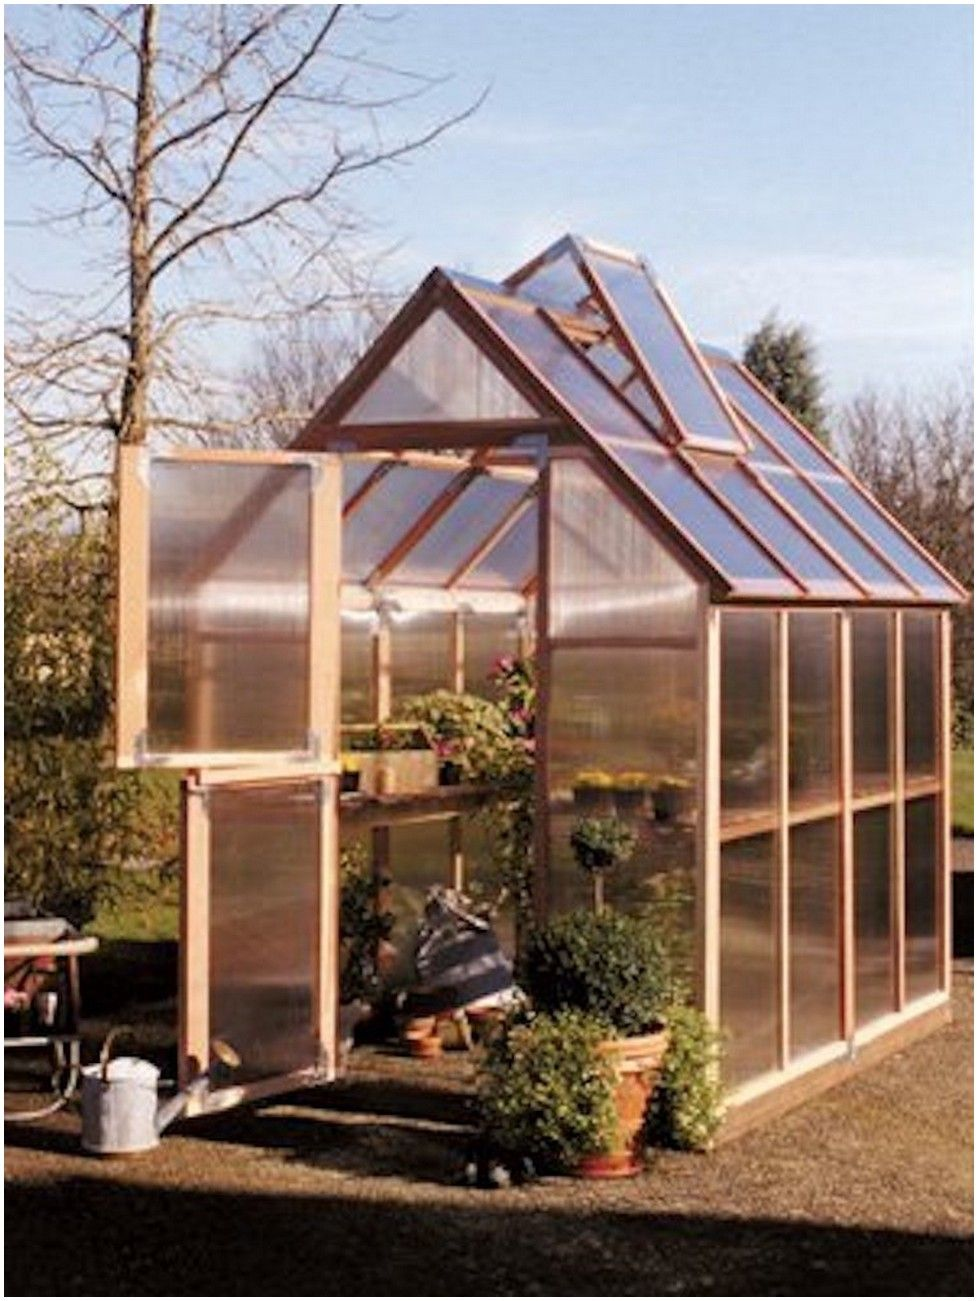 You Need To See These Stunning Backyard Greenhouses 11 Greenhouse Kit Backyard Greenhouse Greenhouse Backyard greenhouse kits for sale